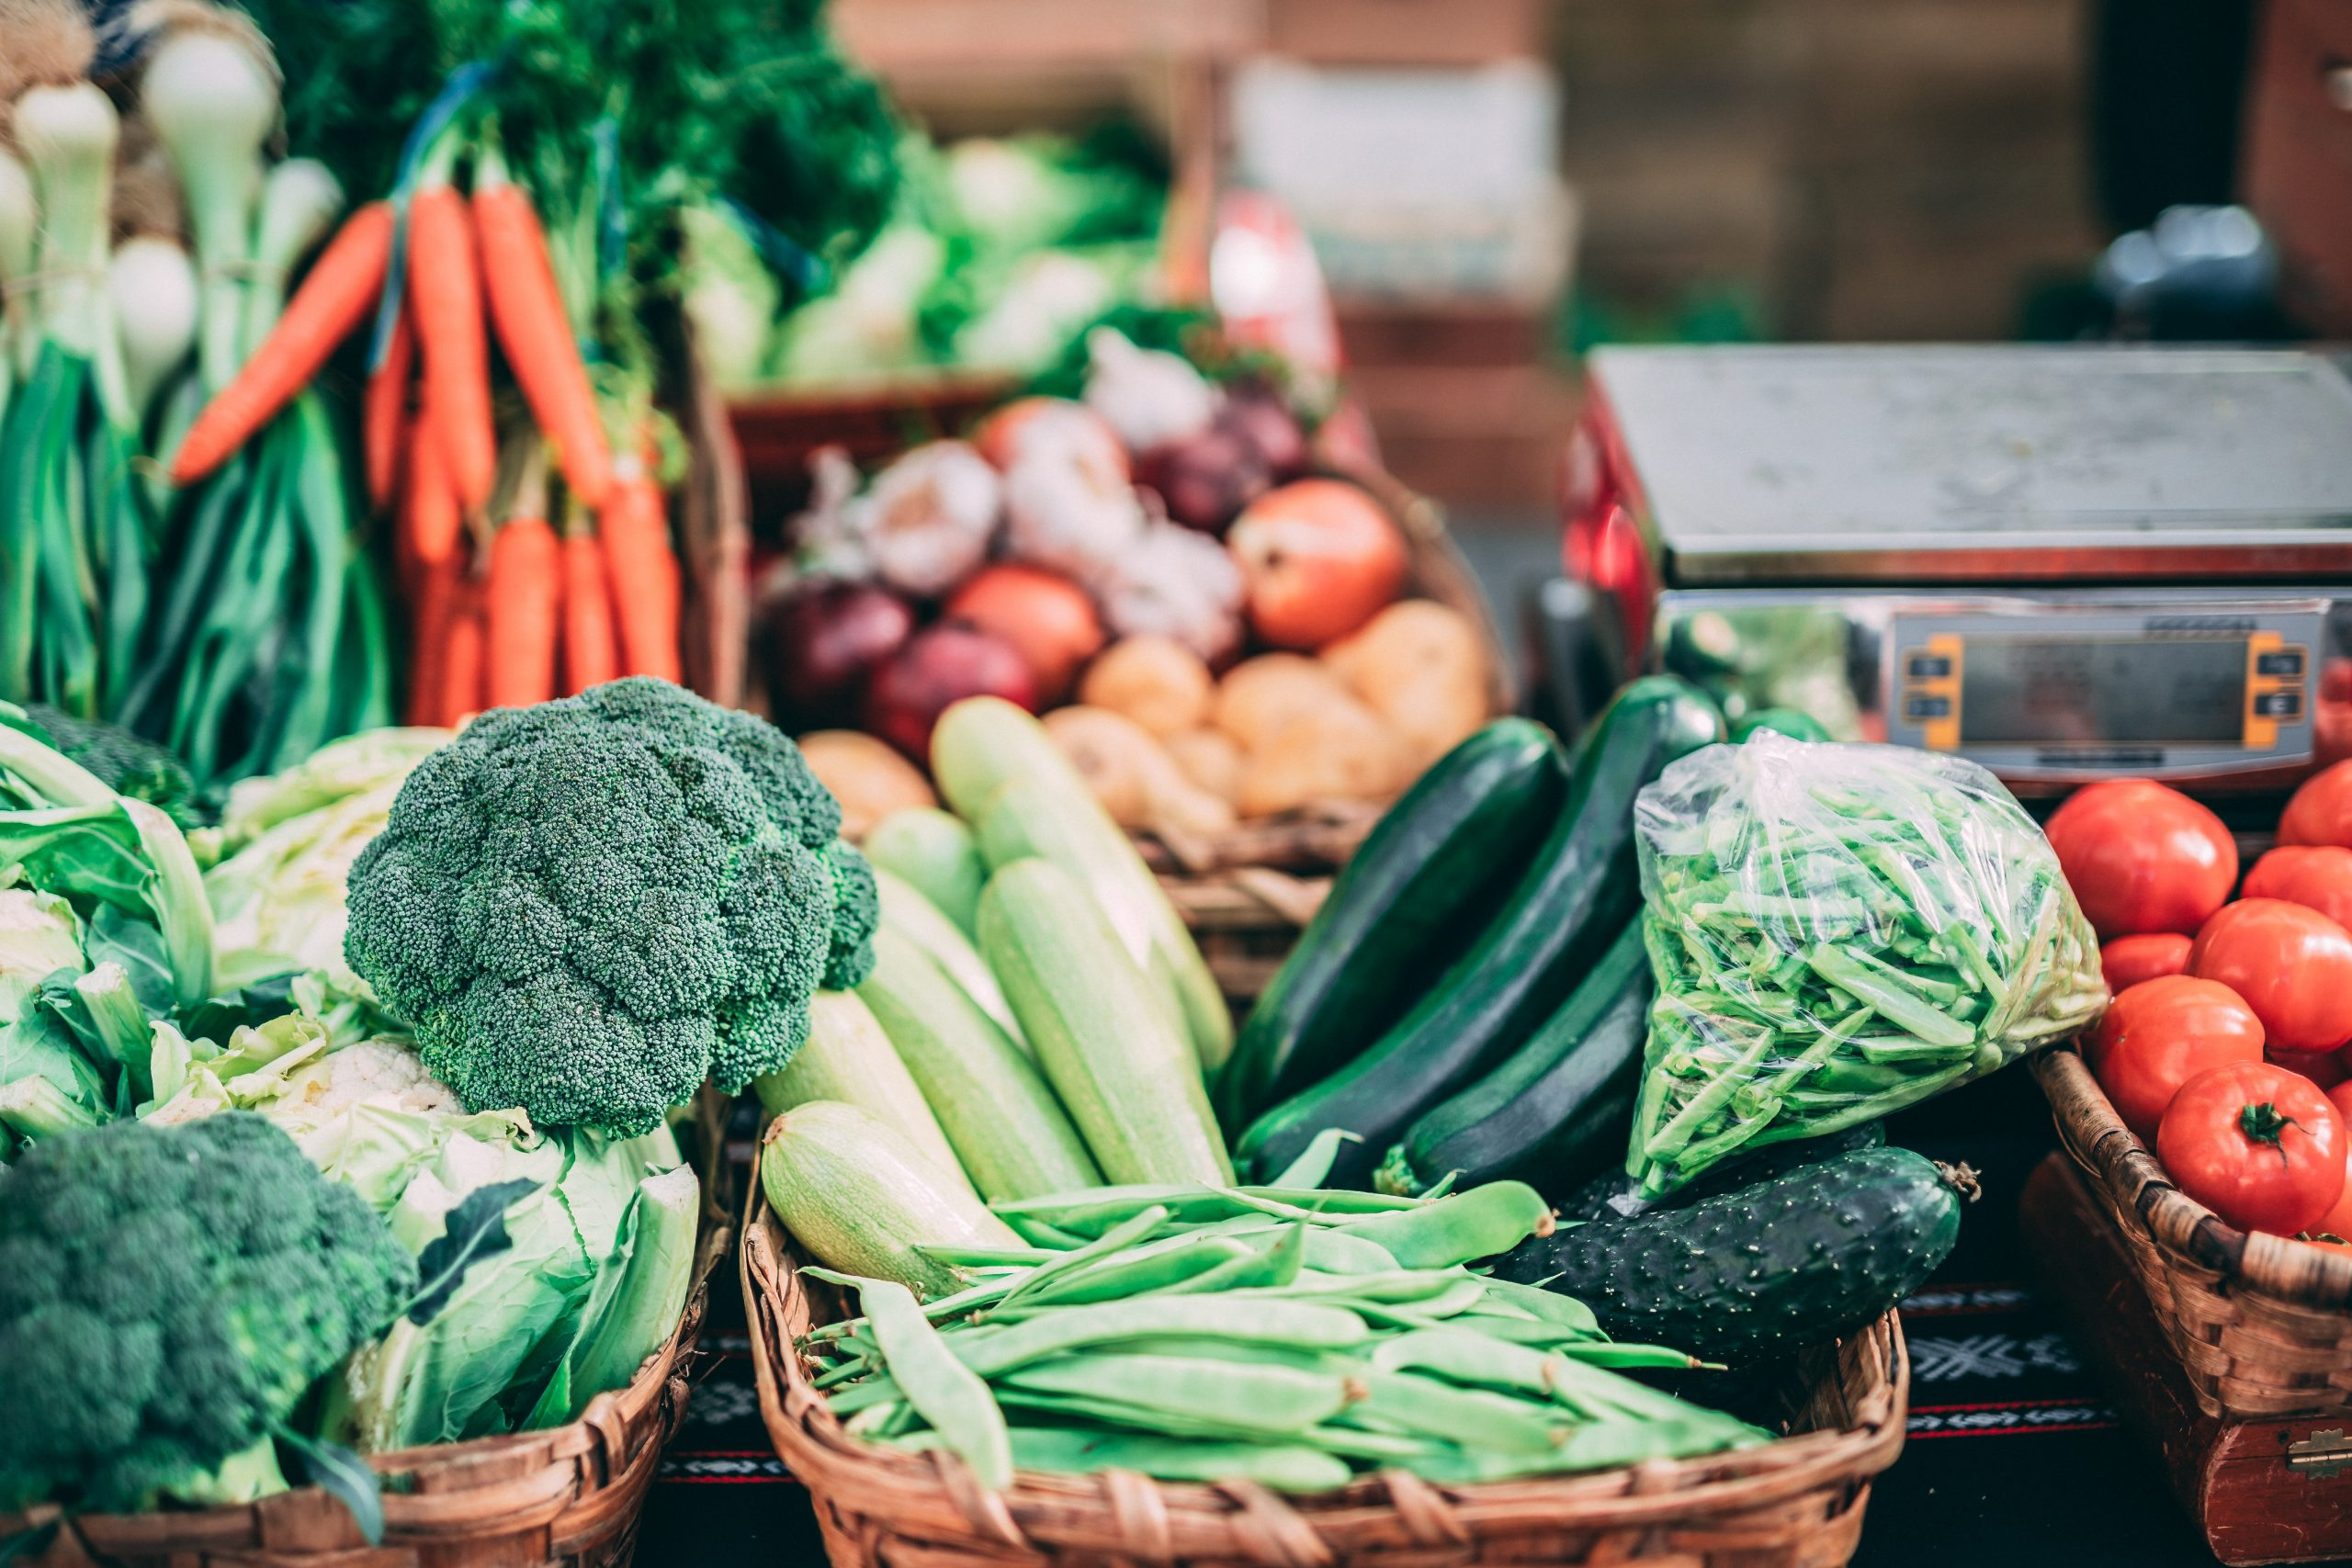 Table of vegetables.